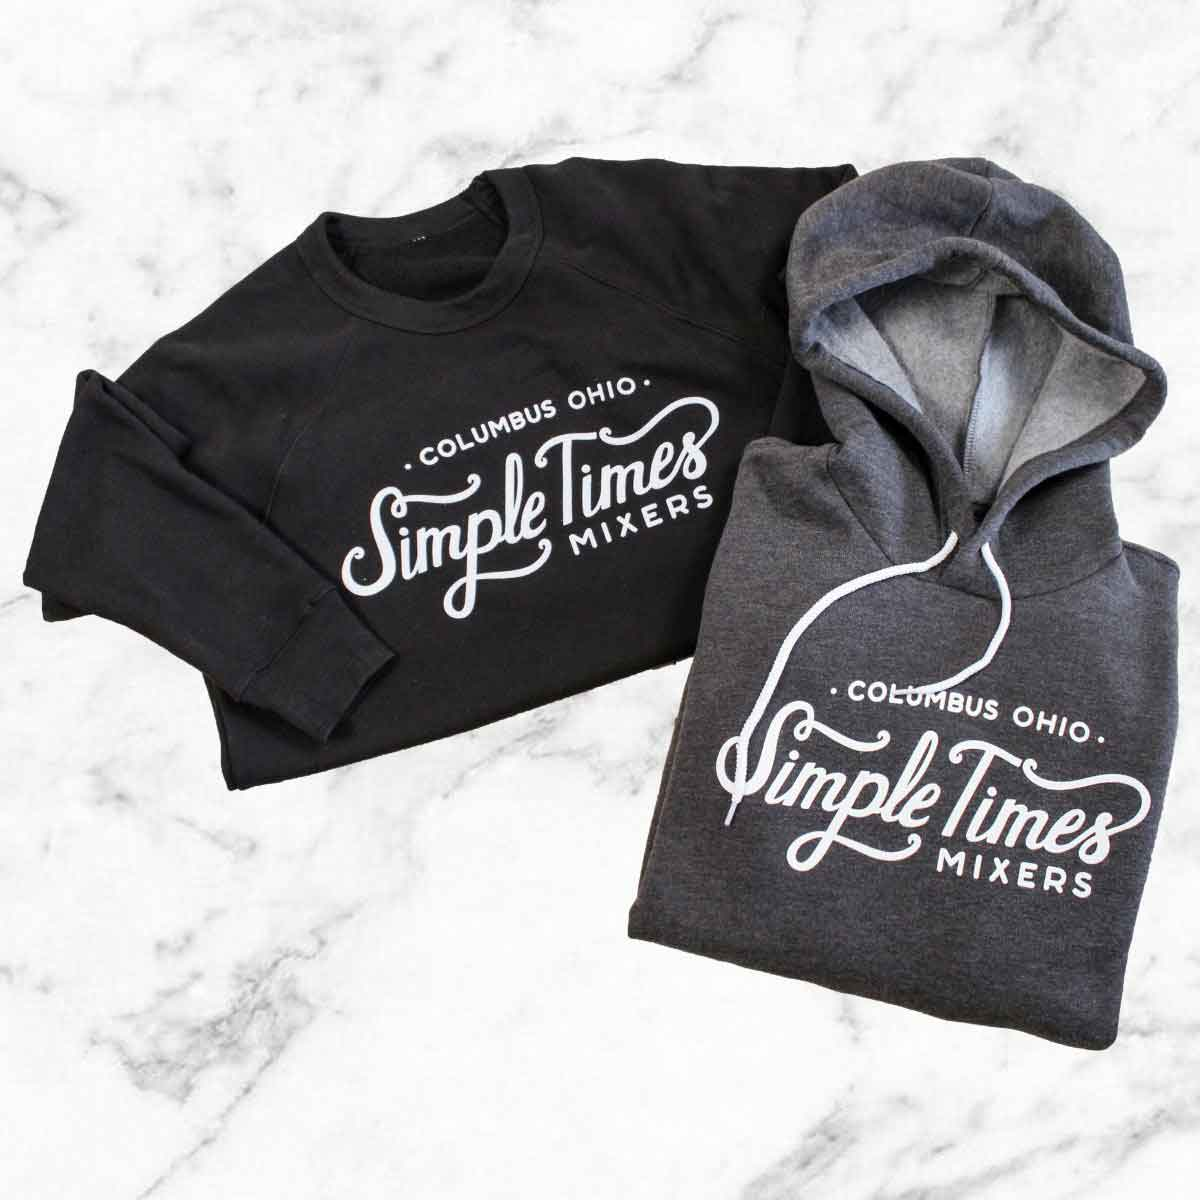 Cocktail Mixers - Alcohol Mixers - Simple Times Mixers - STM Sweatshirts